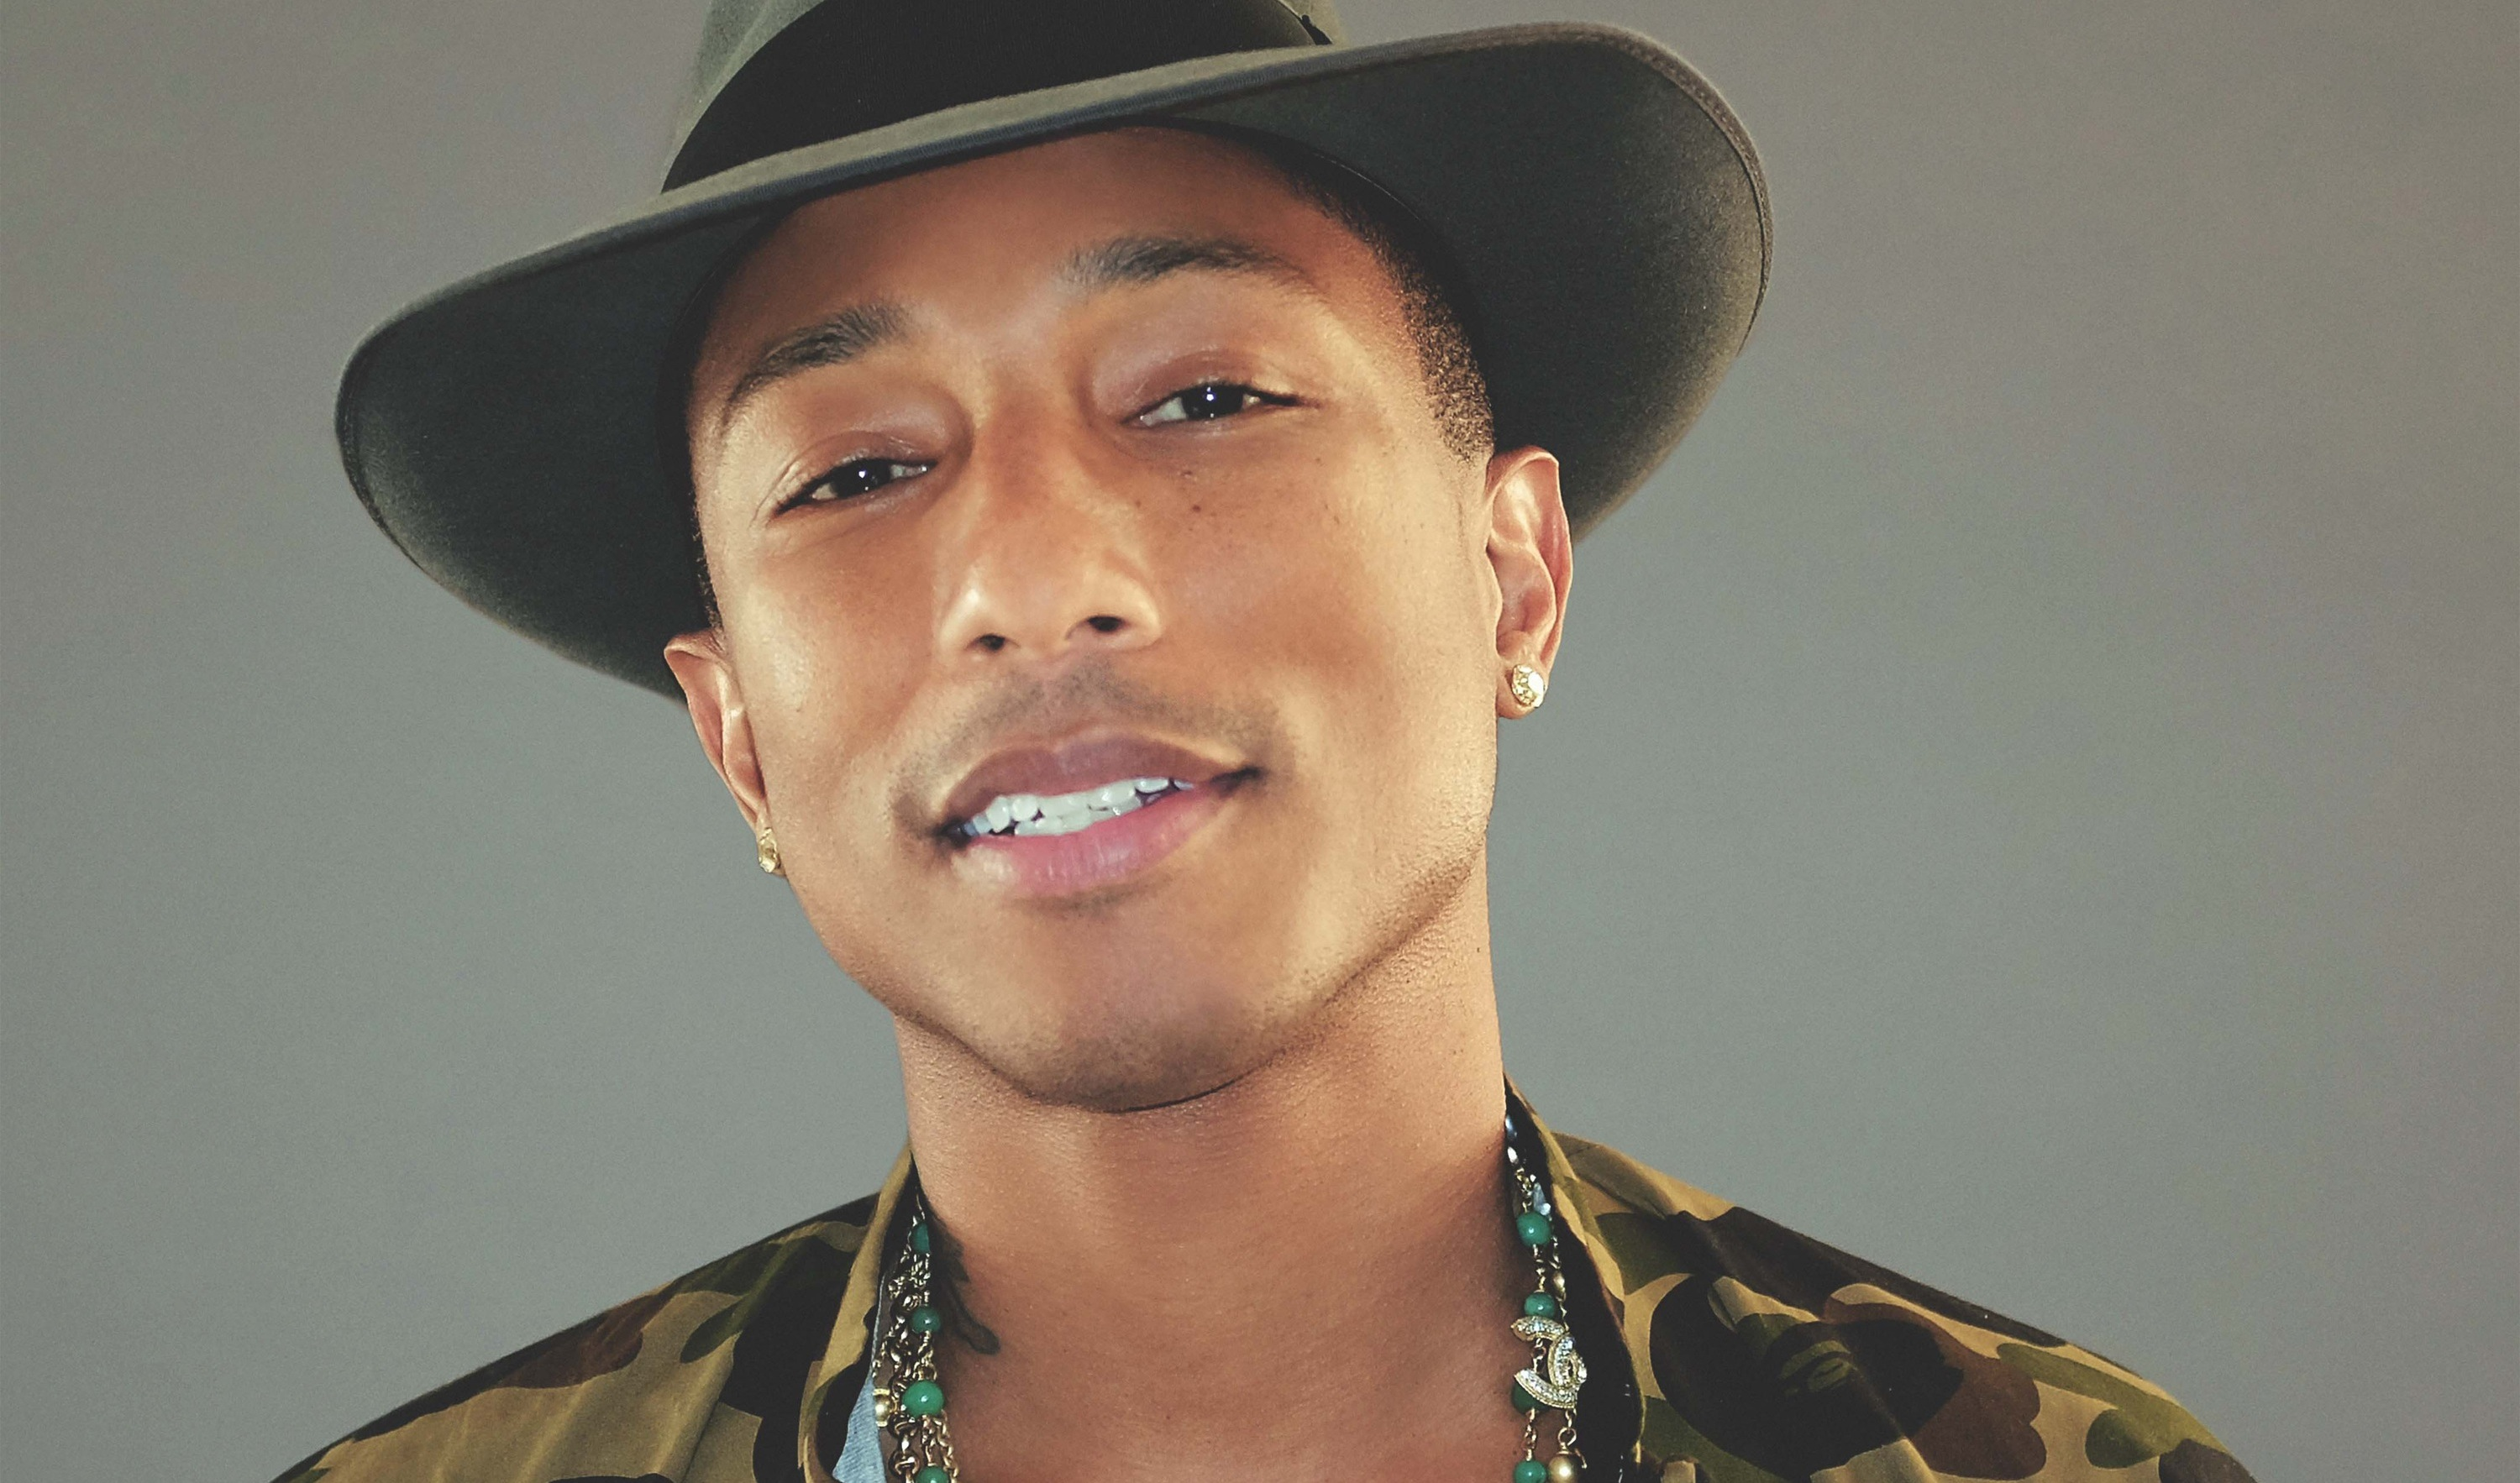 Pharrel Williams nuovo album girl